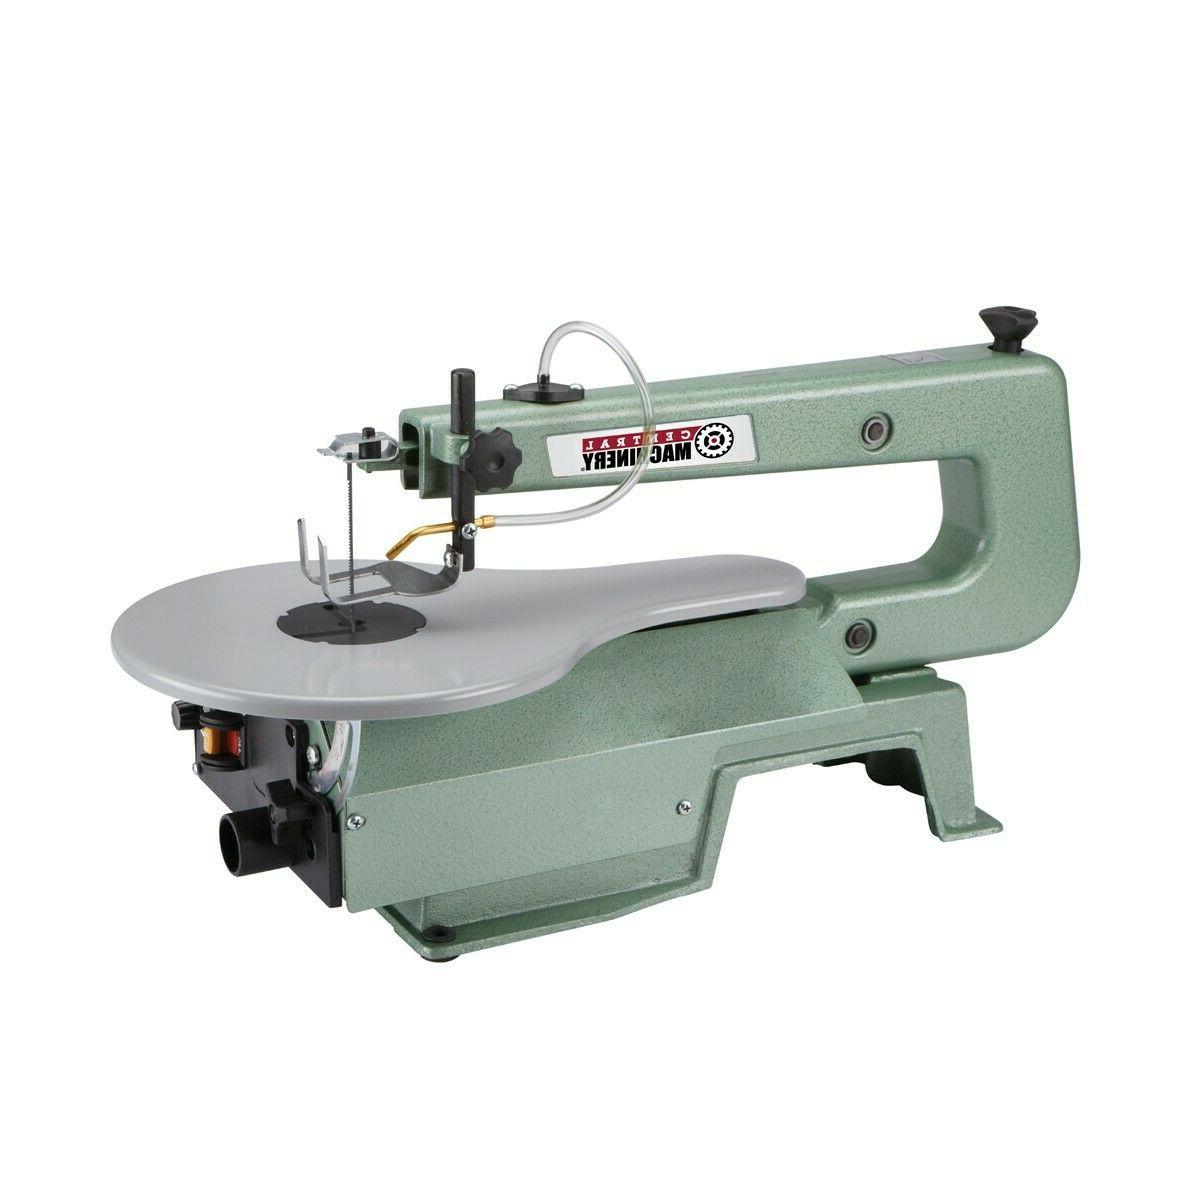 "16"" Variable Speed Saw Duty Woodworking Cuts"